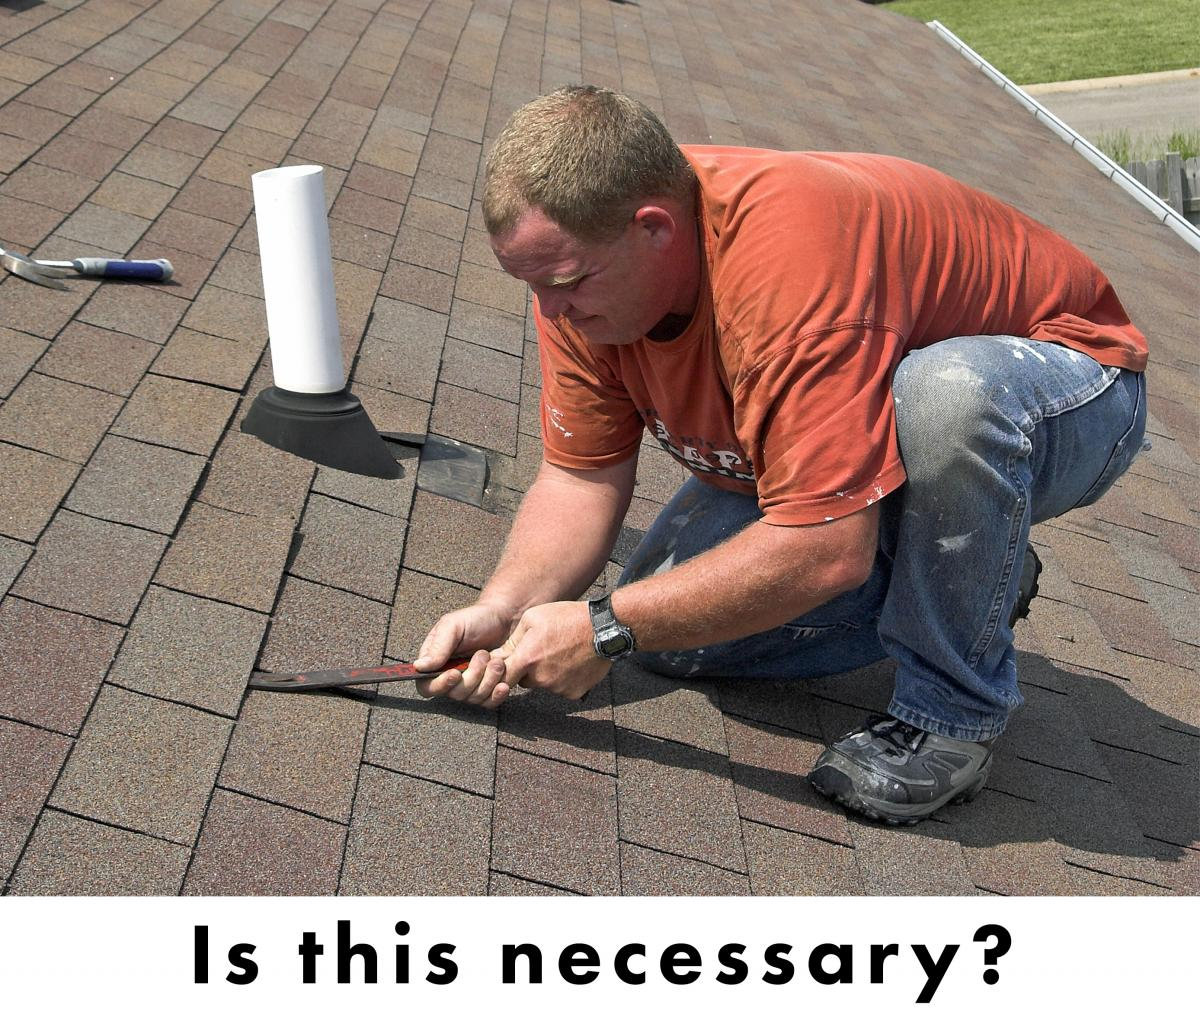 lifting shingles sucks, so is it even necessary or is there a better way? yes.